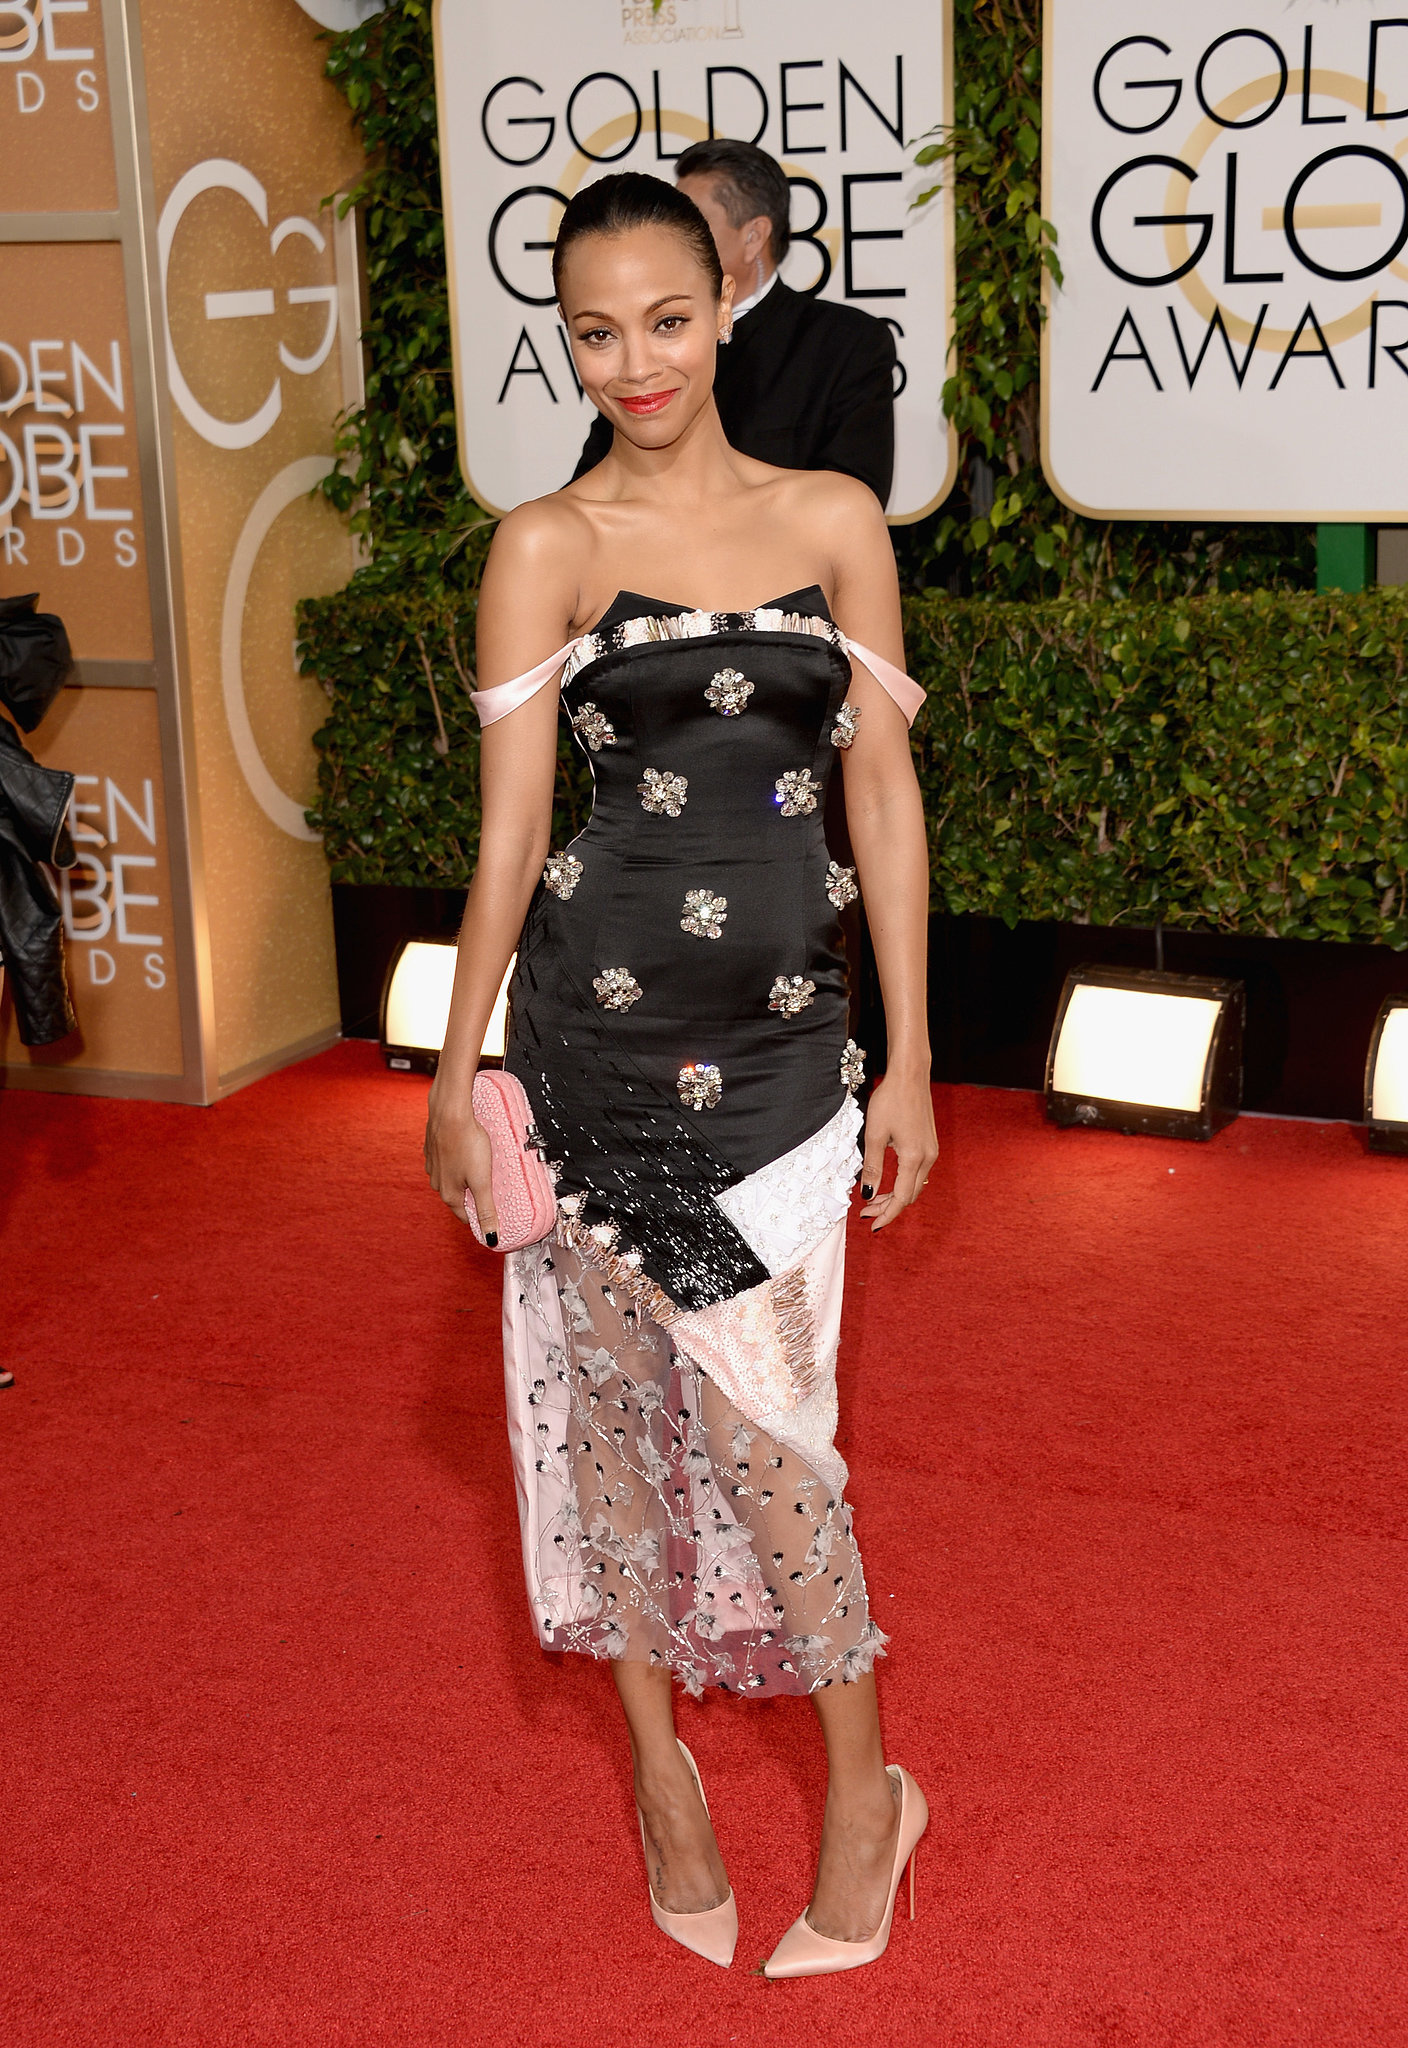 The 2014 Golden Globes brought out Zoe's playful side in a geometric Prabal Gurung number.